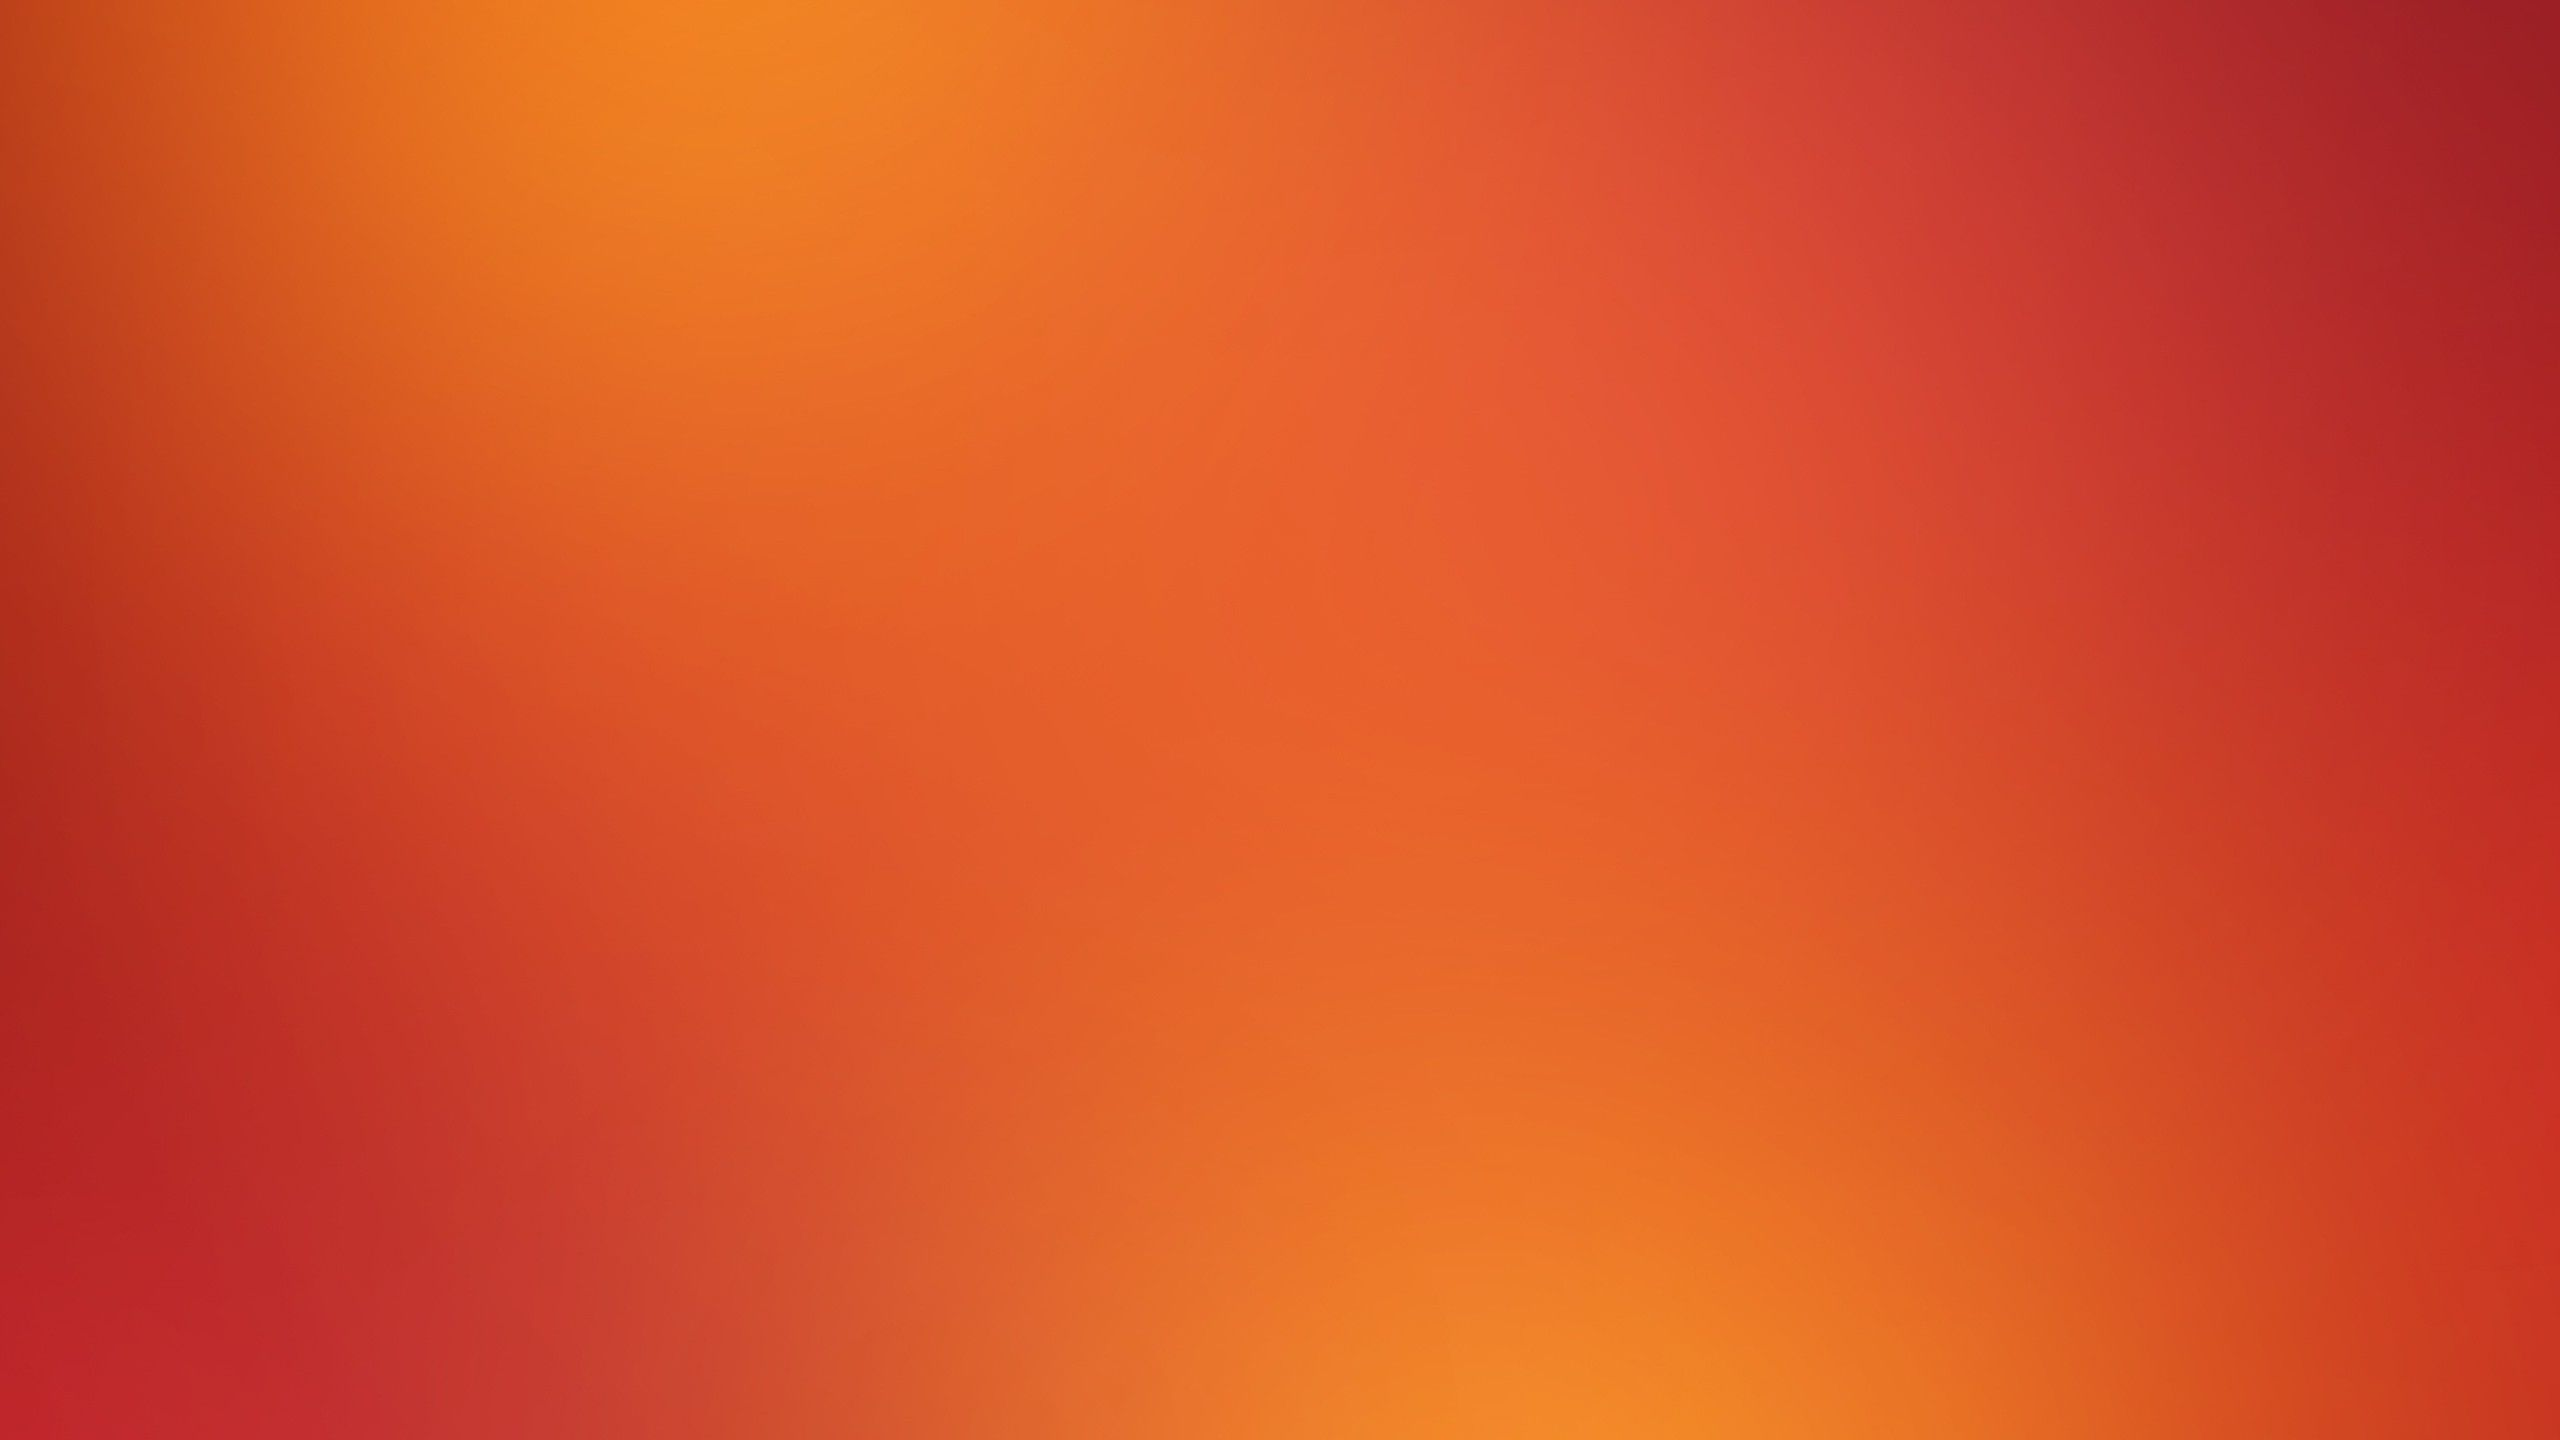 Red Yellow Orange Gaussian Blur / 2560x1440 Wallpaper